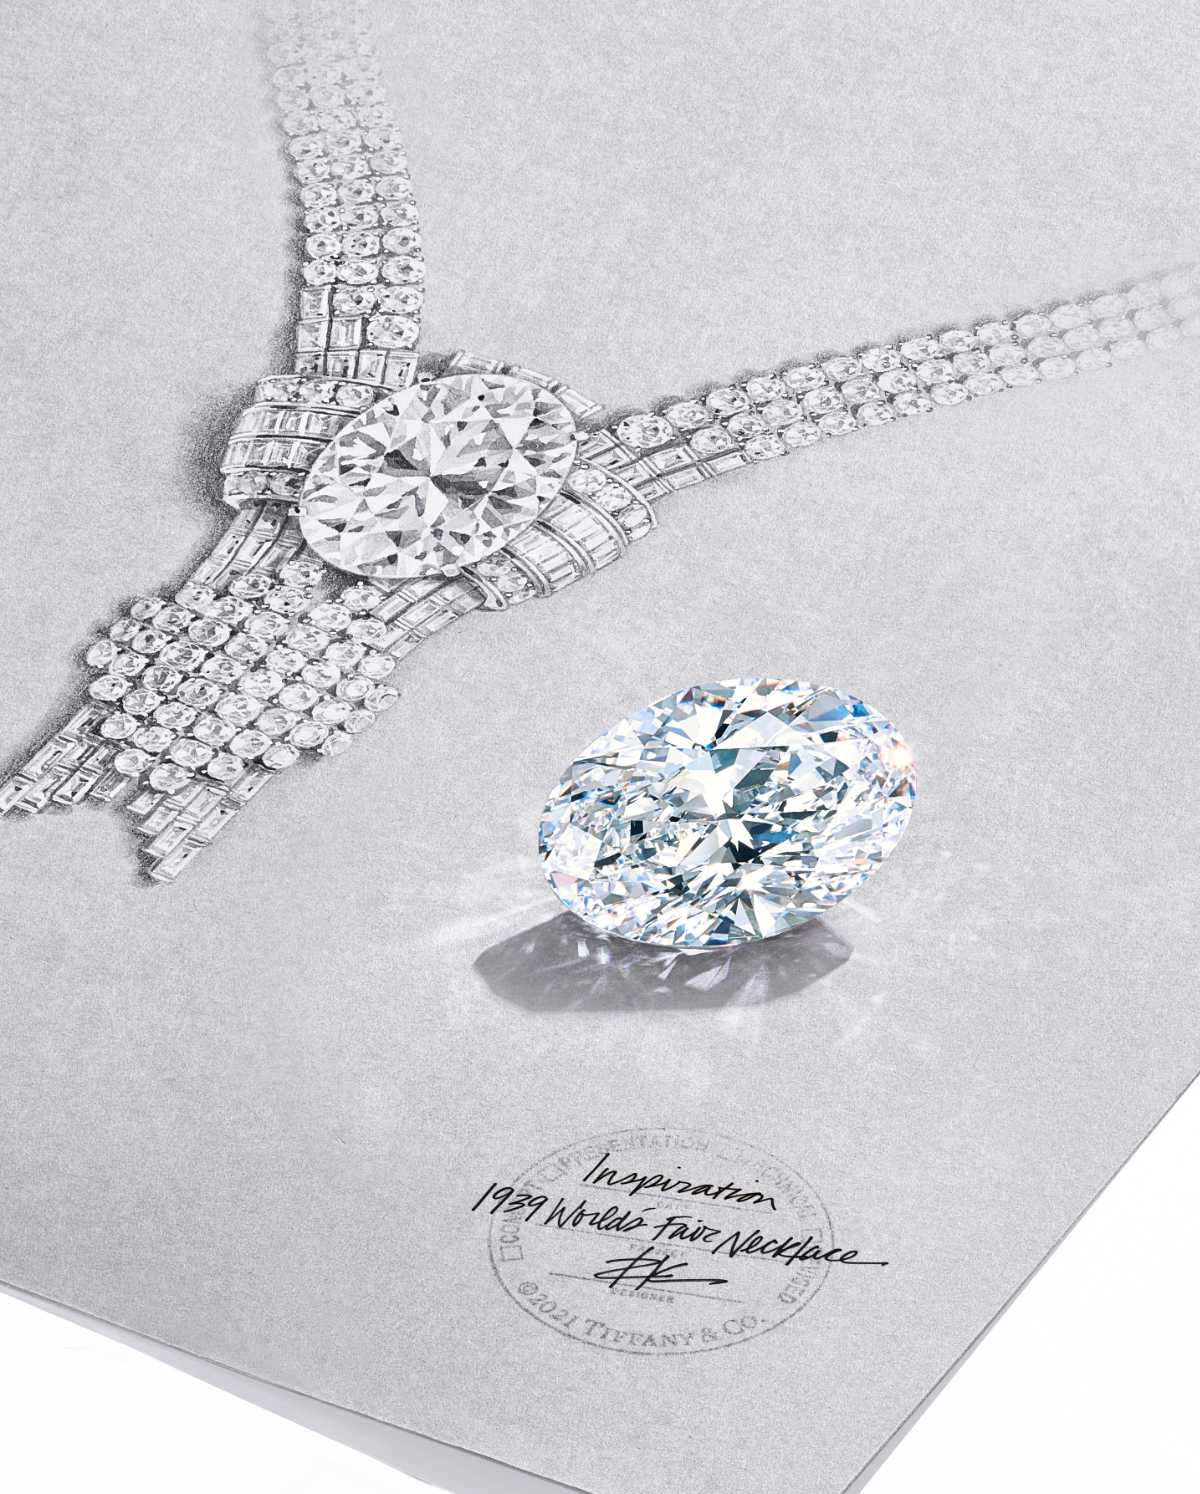 Tiffany Acquires Unique And Responsibly Sourced 80-Carat Diamond